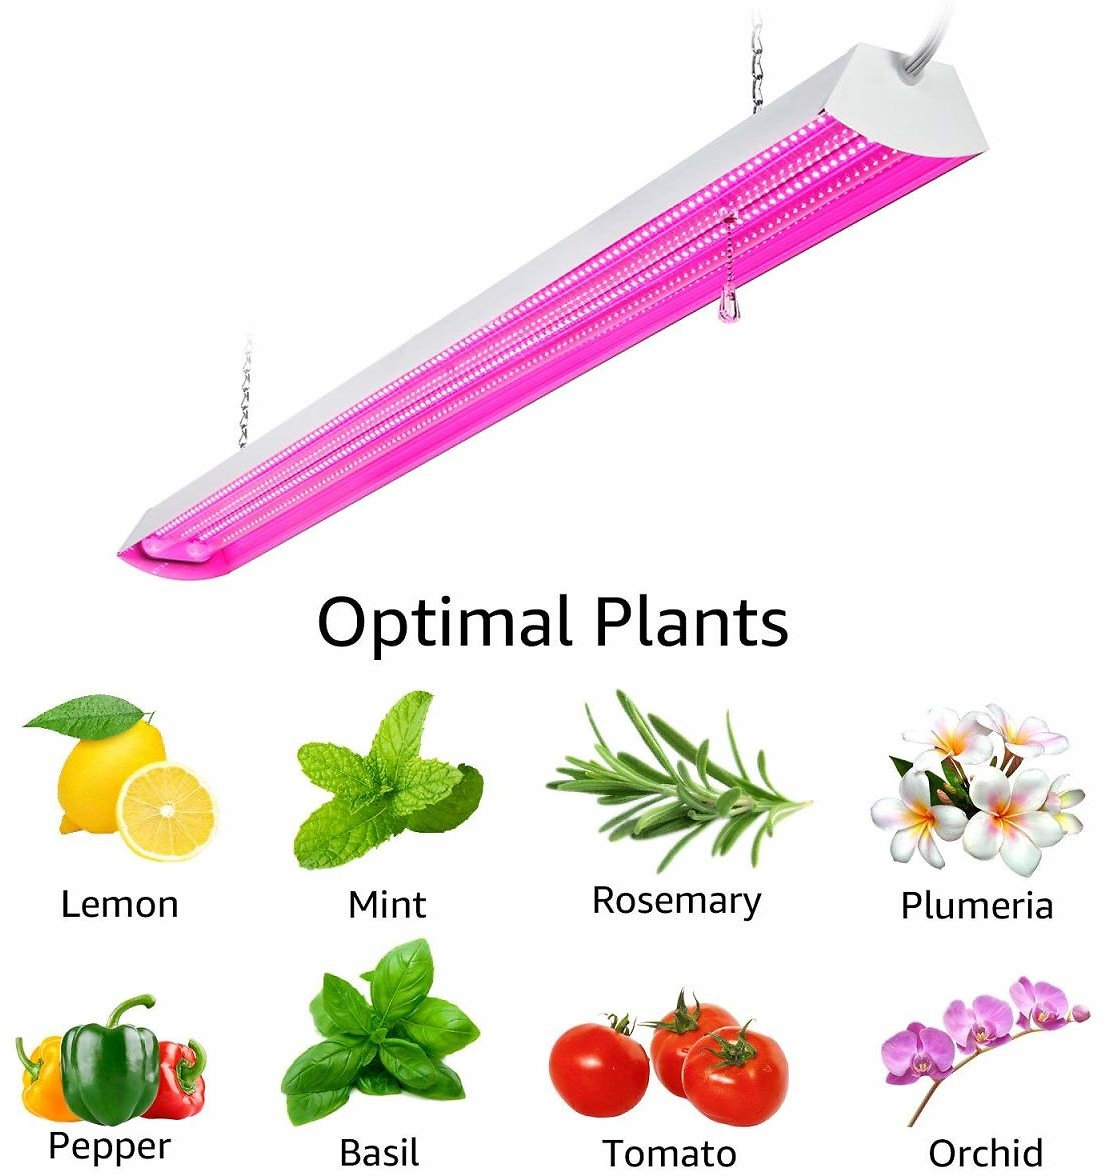 LEONLITE 48W LED Grow Lights, Led Grow Lights for Indoor Grow, UL Certified Plant Grow Shop Lights